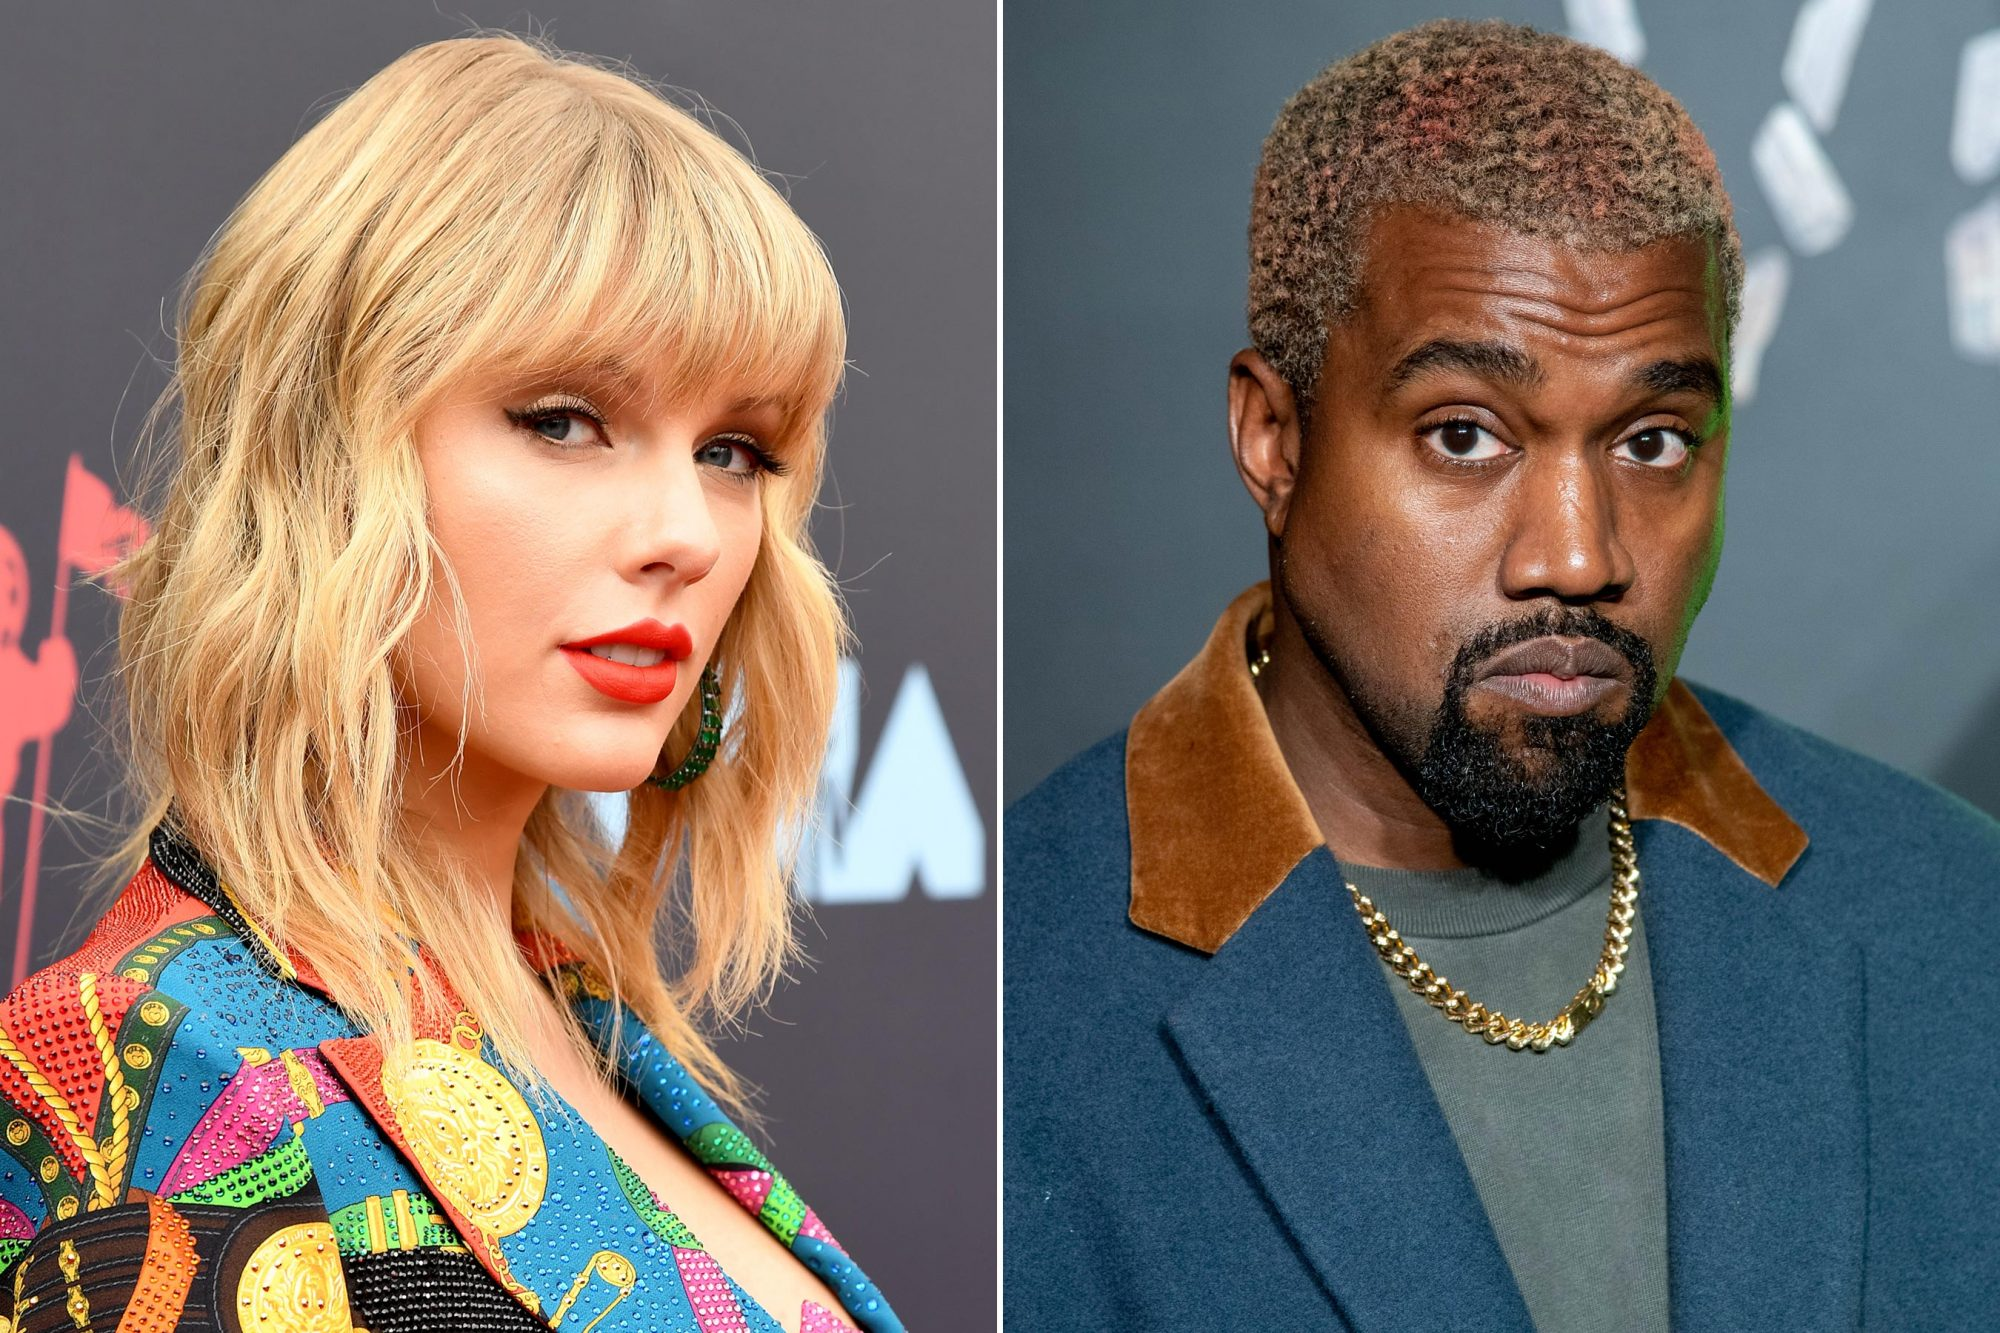 Taylor Swift Talks Kanye West Phone Call In Rolling Stone Interview Ew Com